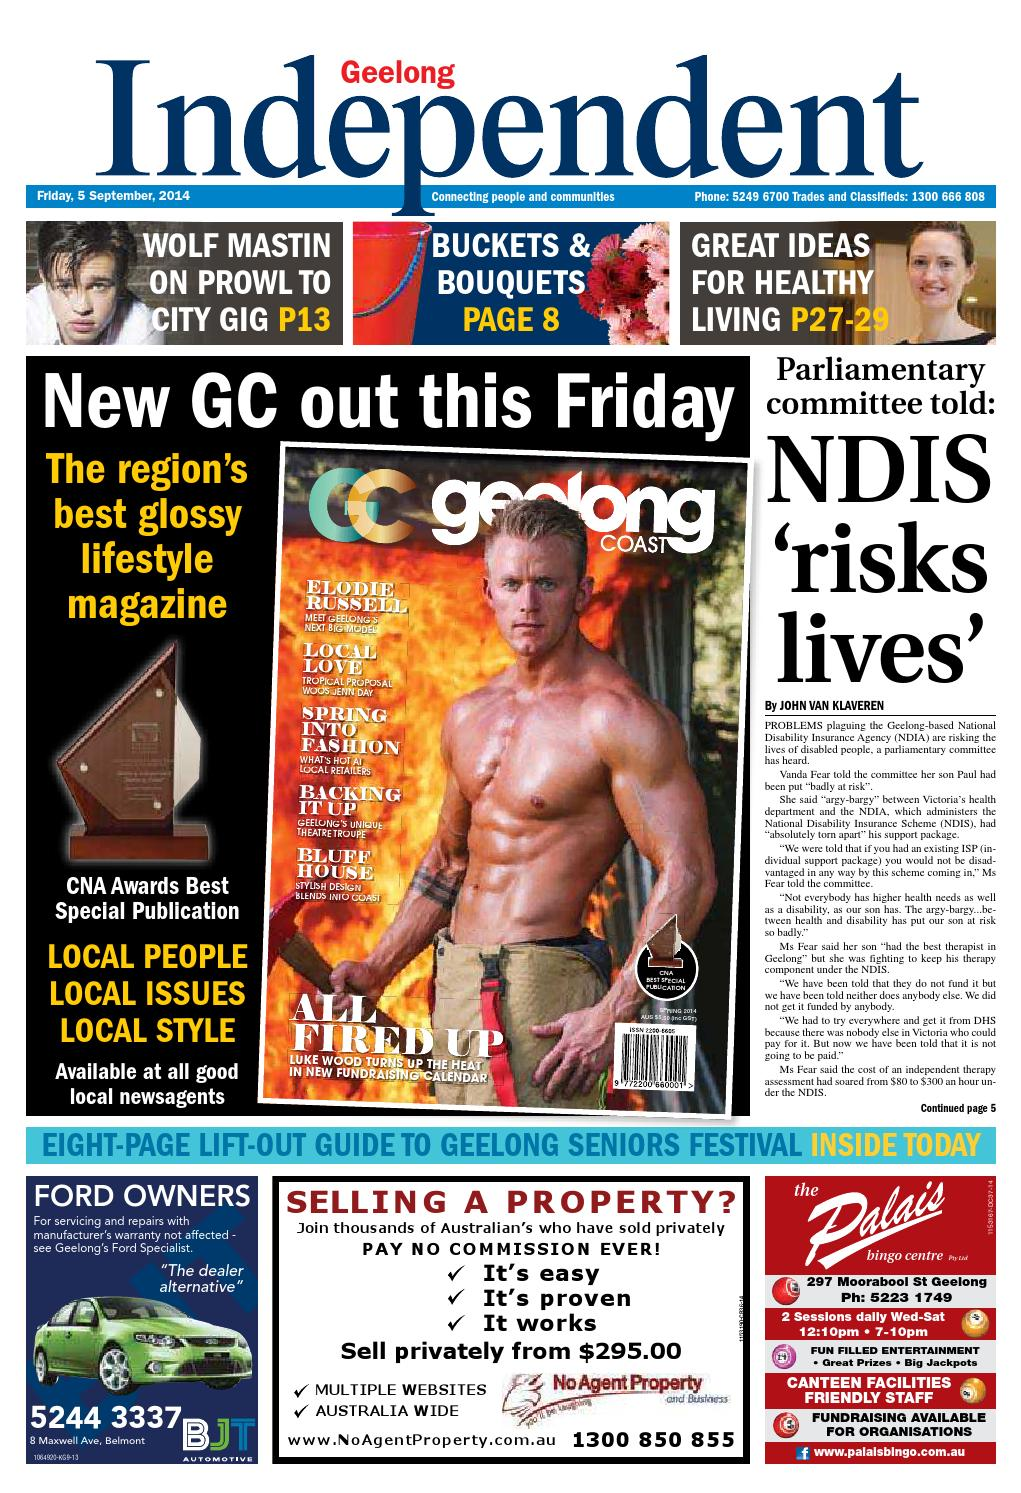 Geelong Independent 05th September 2014 By Star News Group Issuu